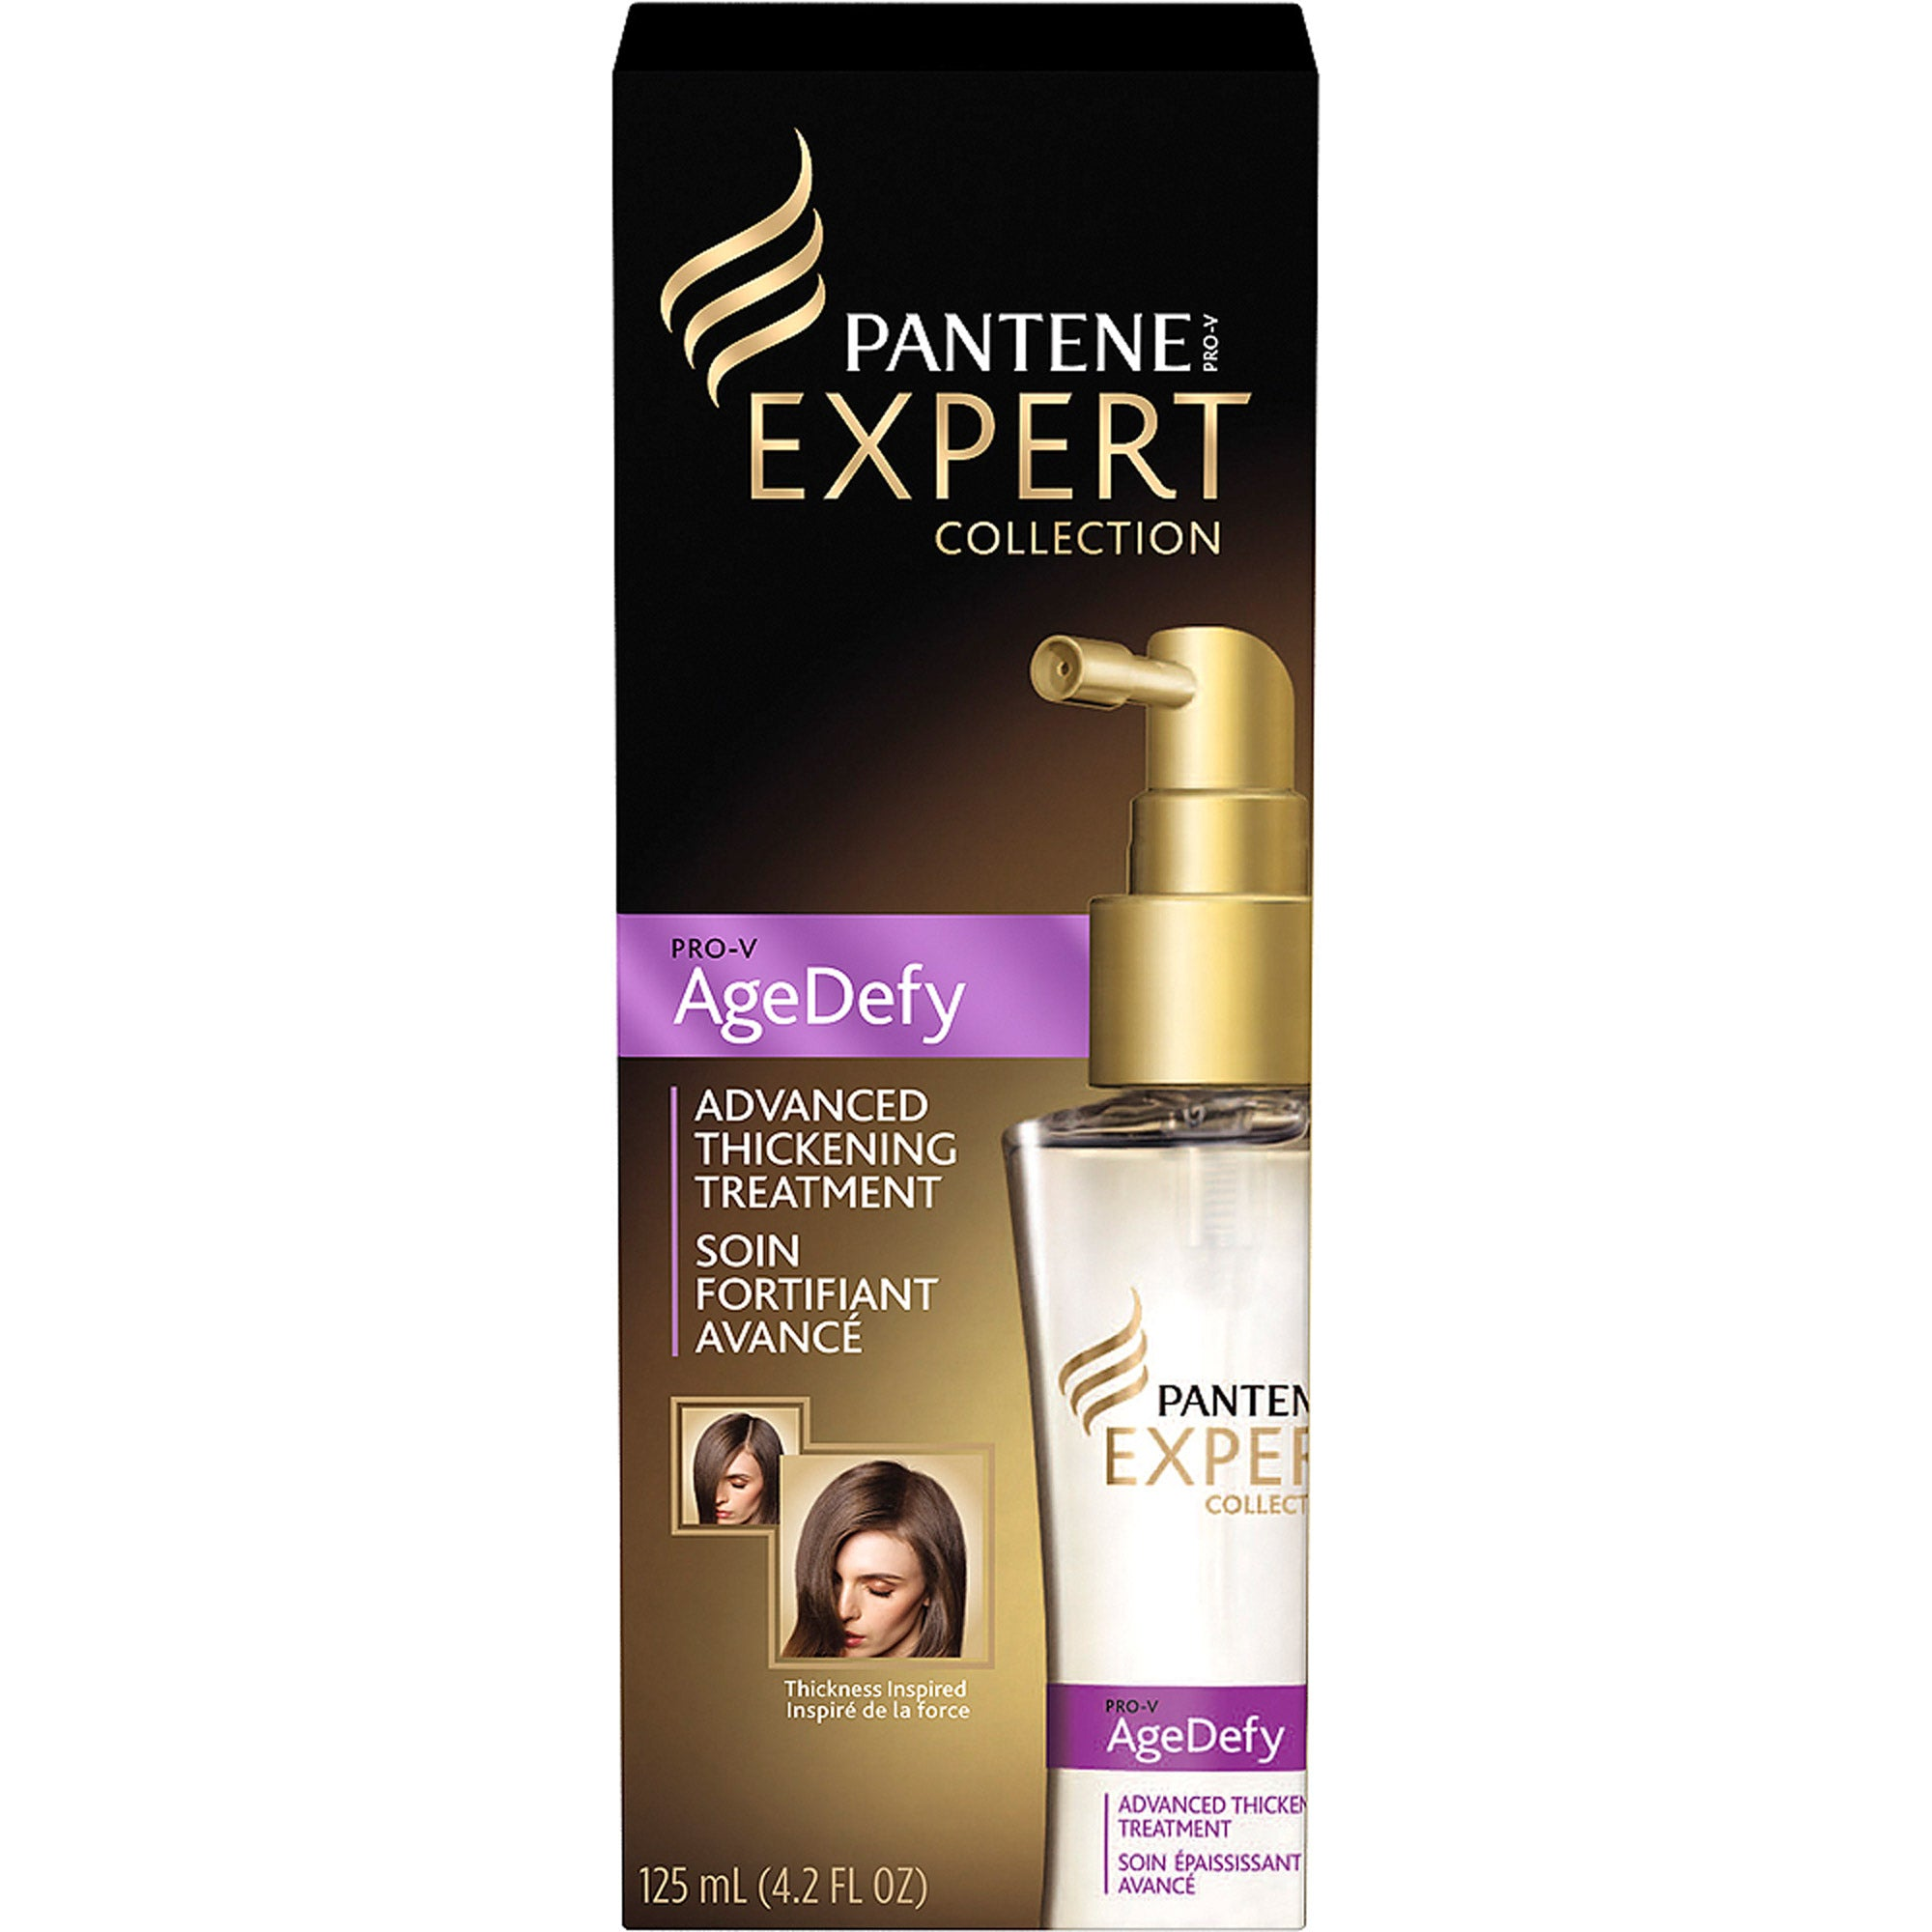 WHOLESALE PANTENE PRO-V EXPERT COLLECTION AGEDEFY ADVANCED THICKENING TREATMENT 4.2 OZ.  - 48 PIECE LOT